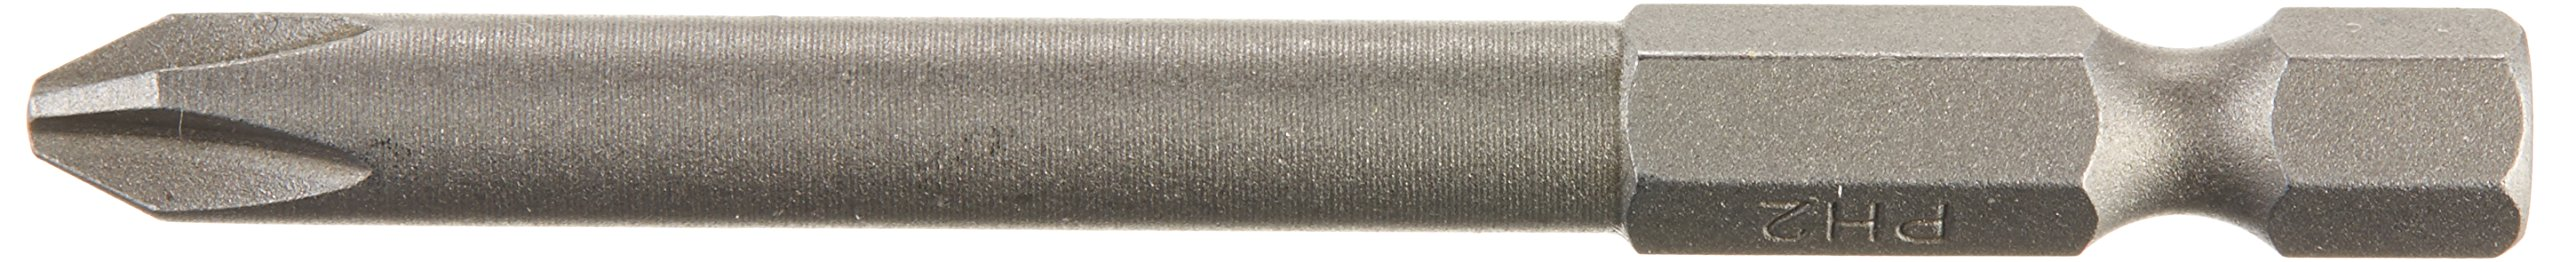 Drill America INS Series Power Bit, 1/4'' Hex Shank, P2 Size, 2-3/4'' Length (Pack of 50) by Drill America